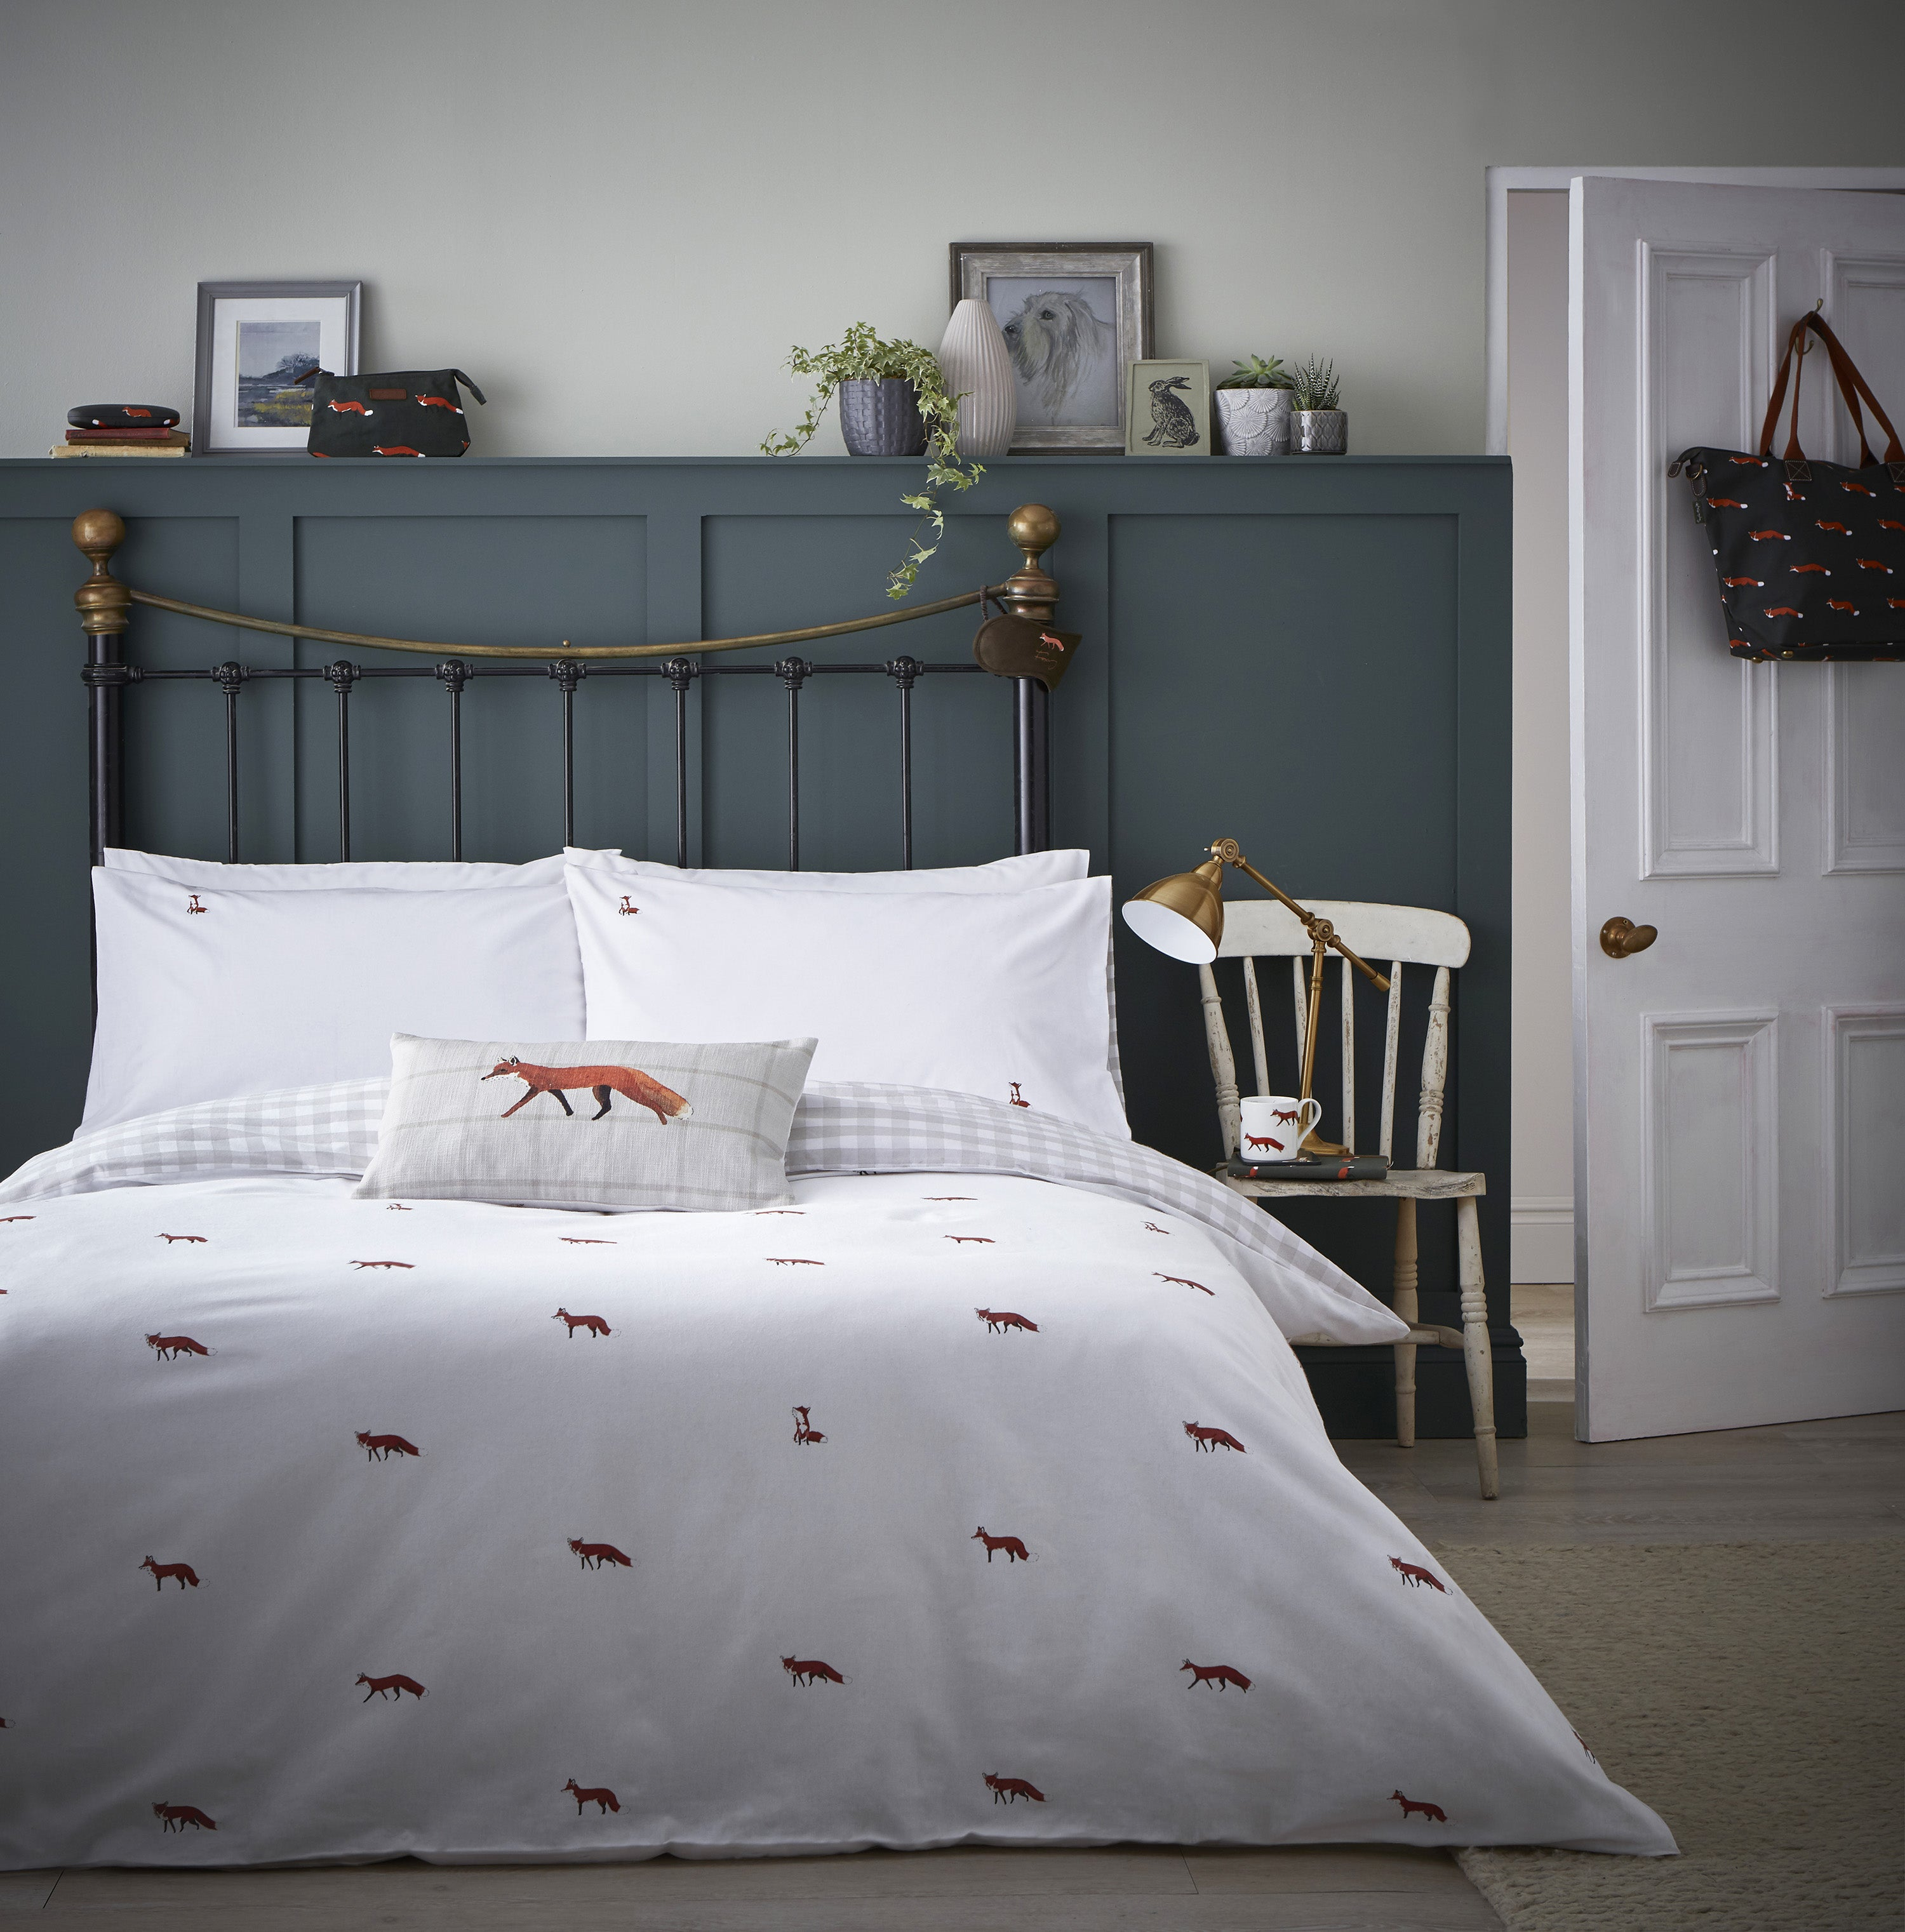 Autumn bedroom ideas with Sophie Allport Foxes Bedding Set, cosy cushions and throws